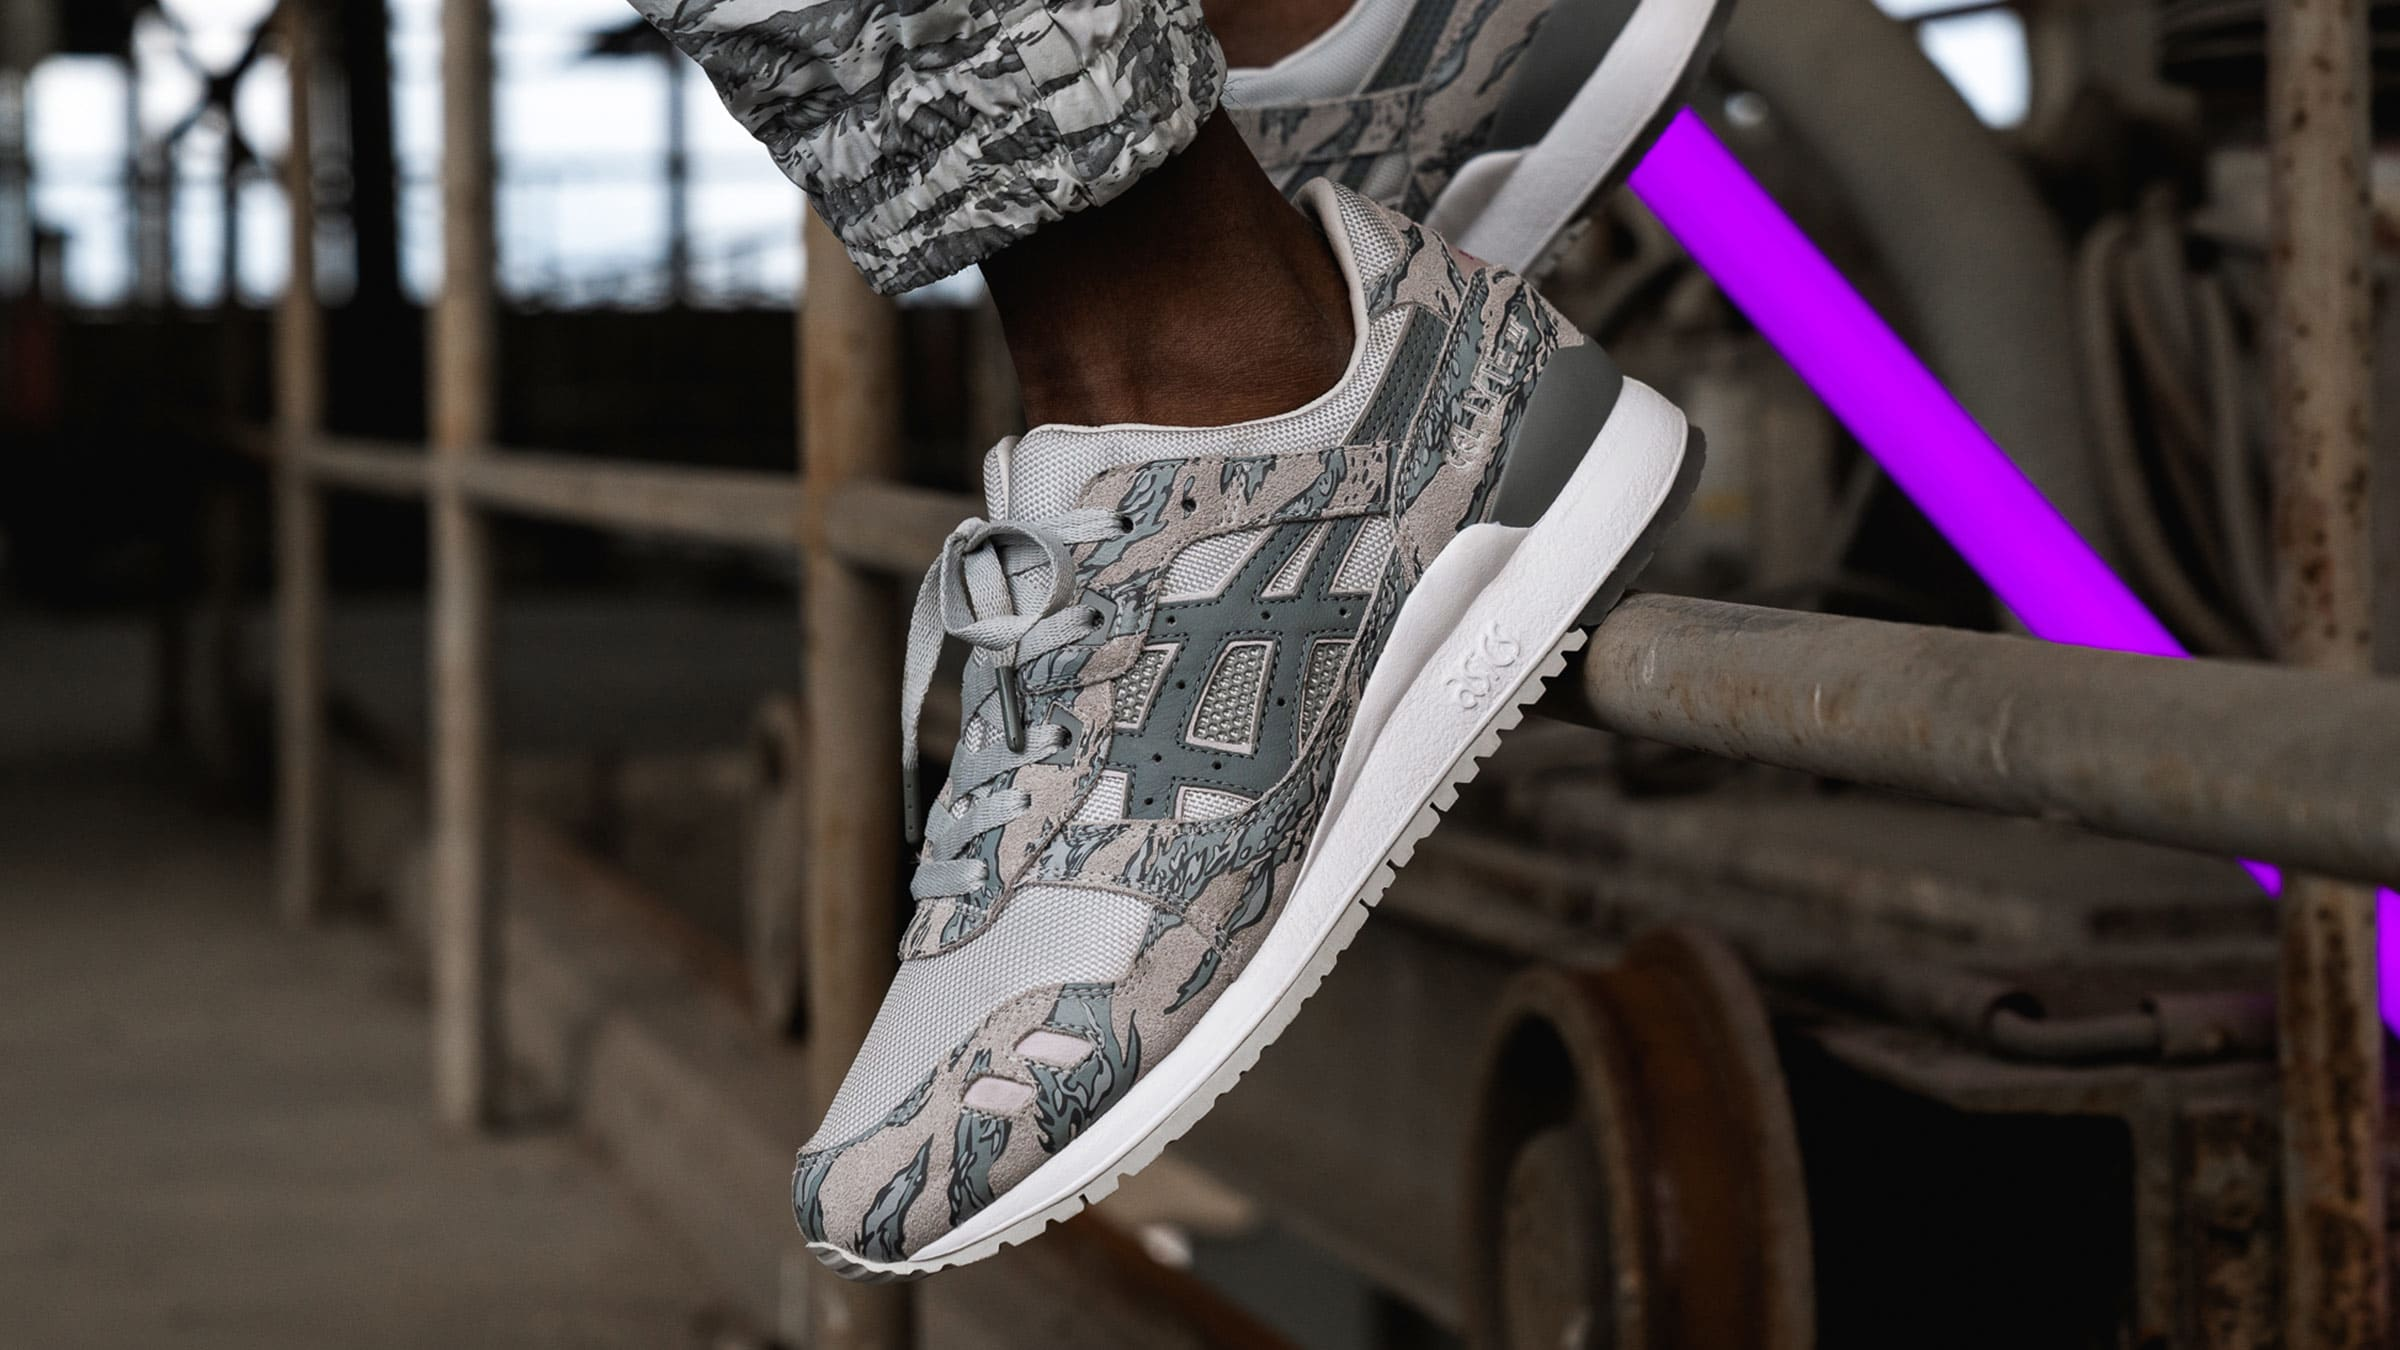 promo code b5dc7 92324 Get Your Chance To Win The ASICS x Atmos x Solebox GEL-LYTE ...